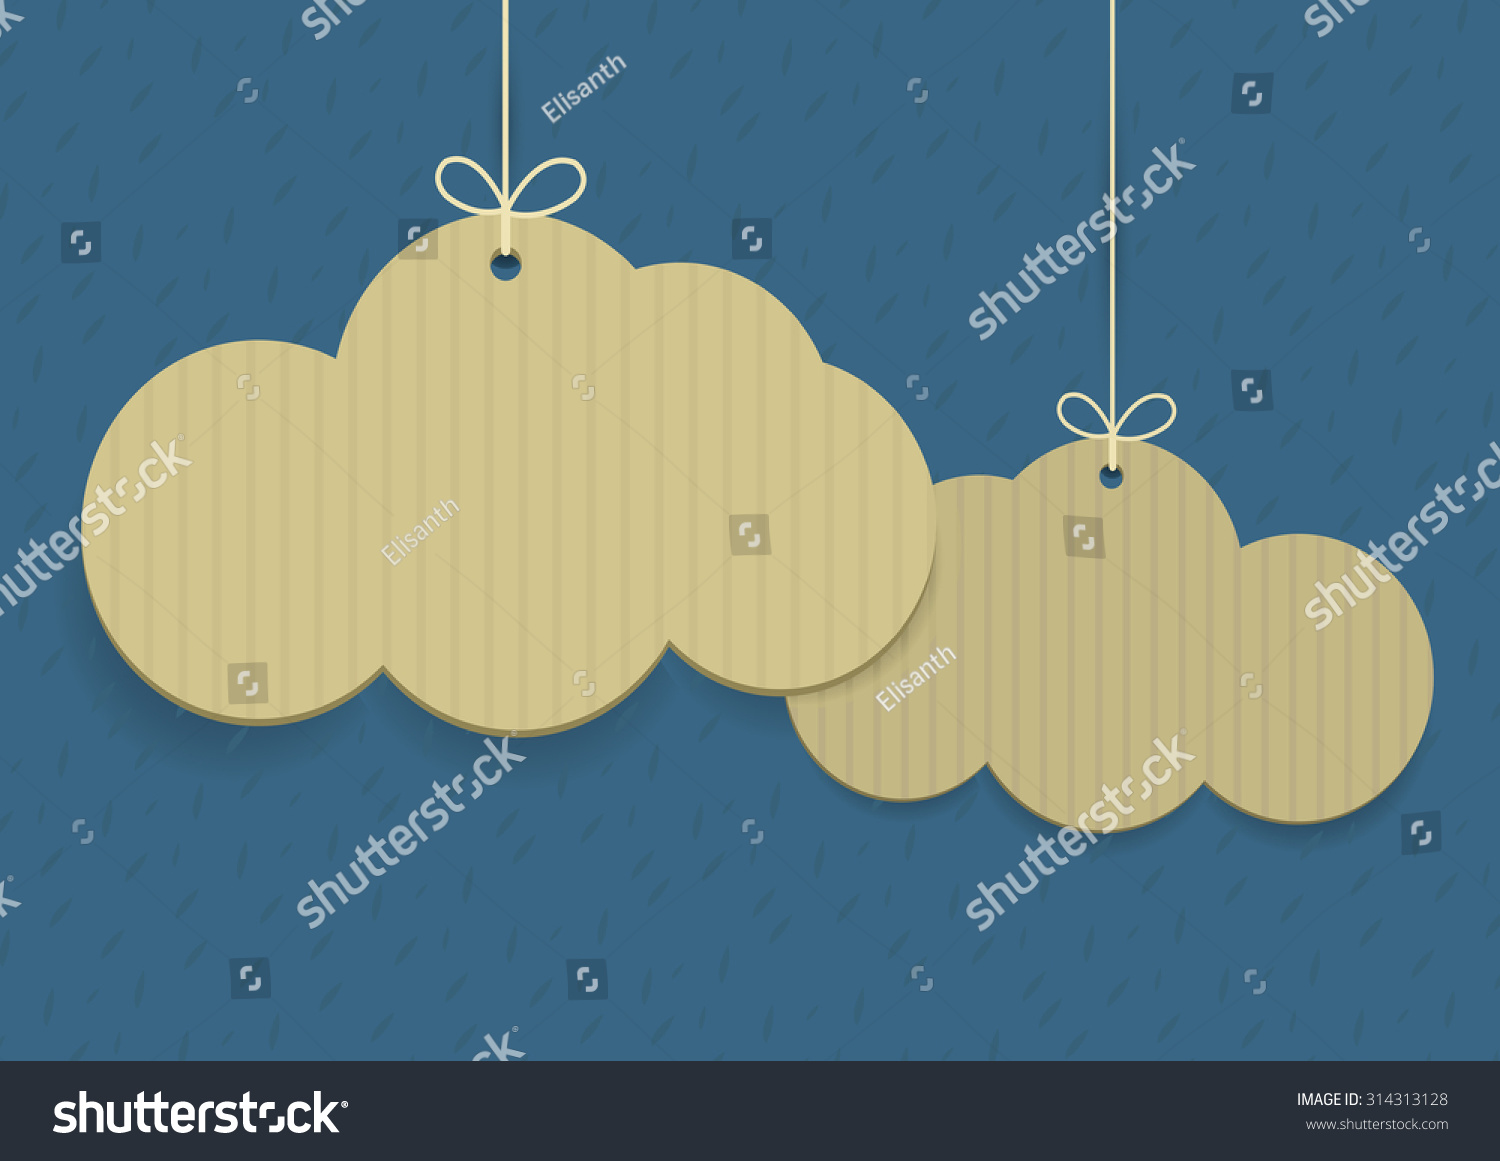 Heart Sky Stock Photos, Royalty-Free Images &amp- Vectors - Shutterstock